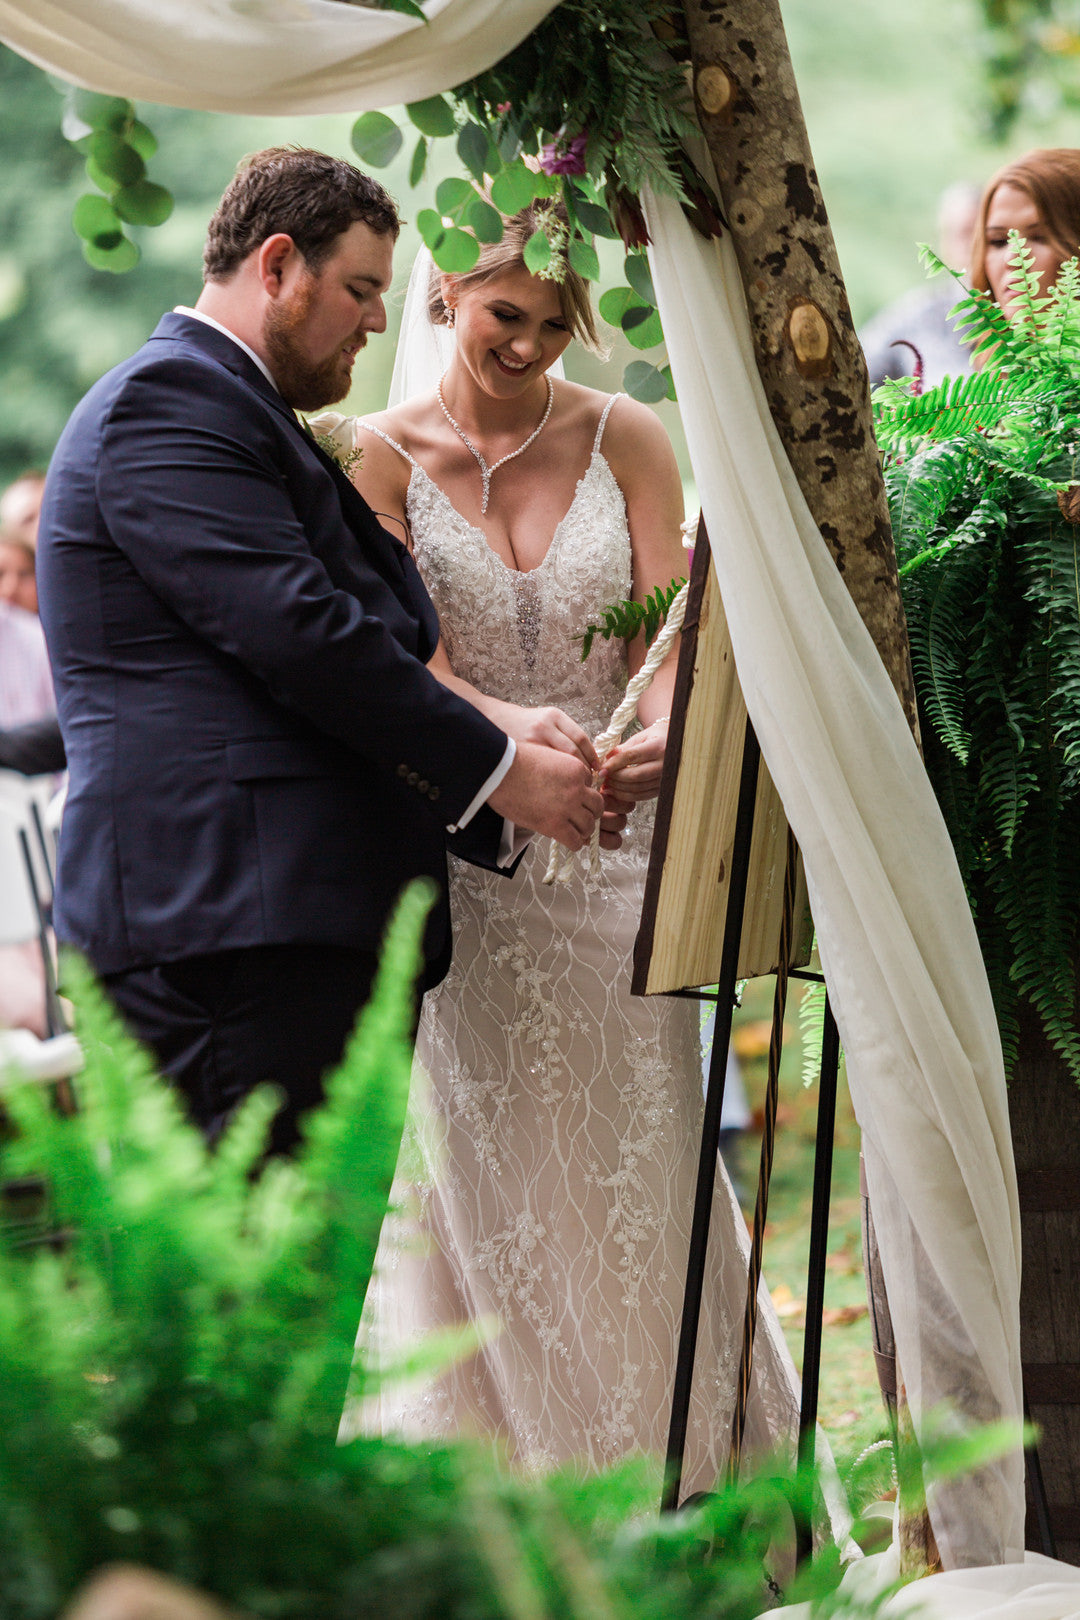 Bride and Groom Tying Knot | Elegant Outdoor Fall Wedding | Kate Aspen